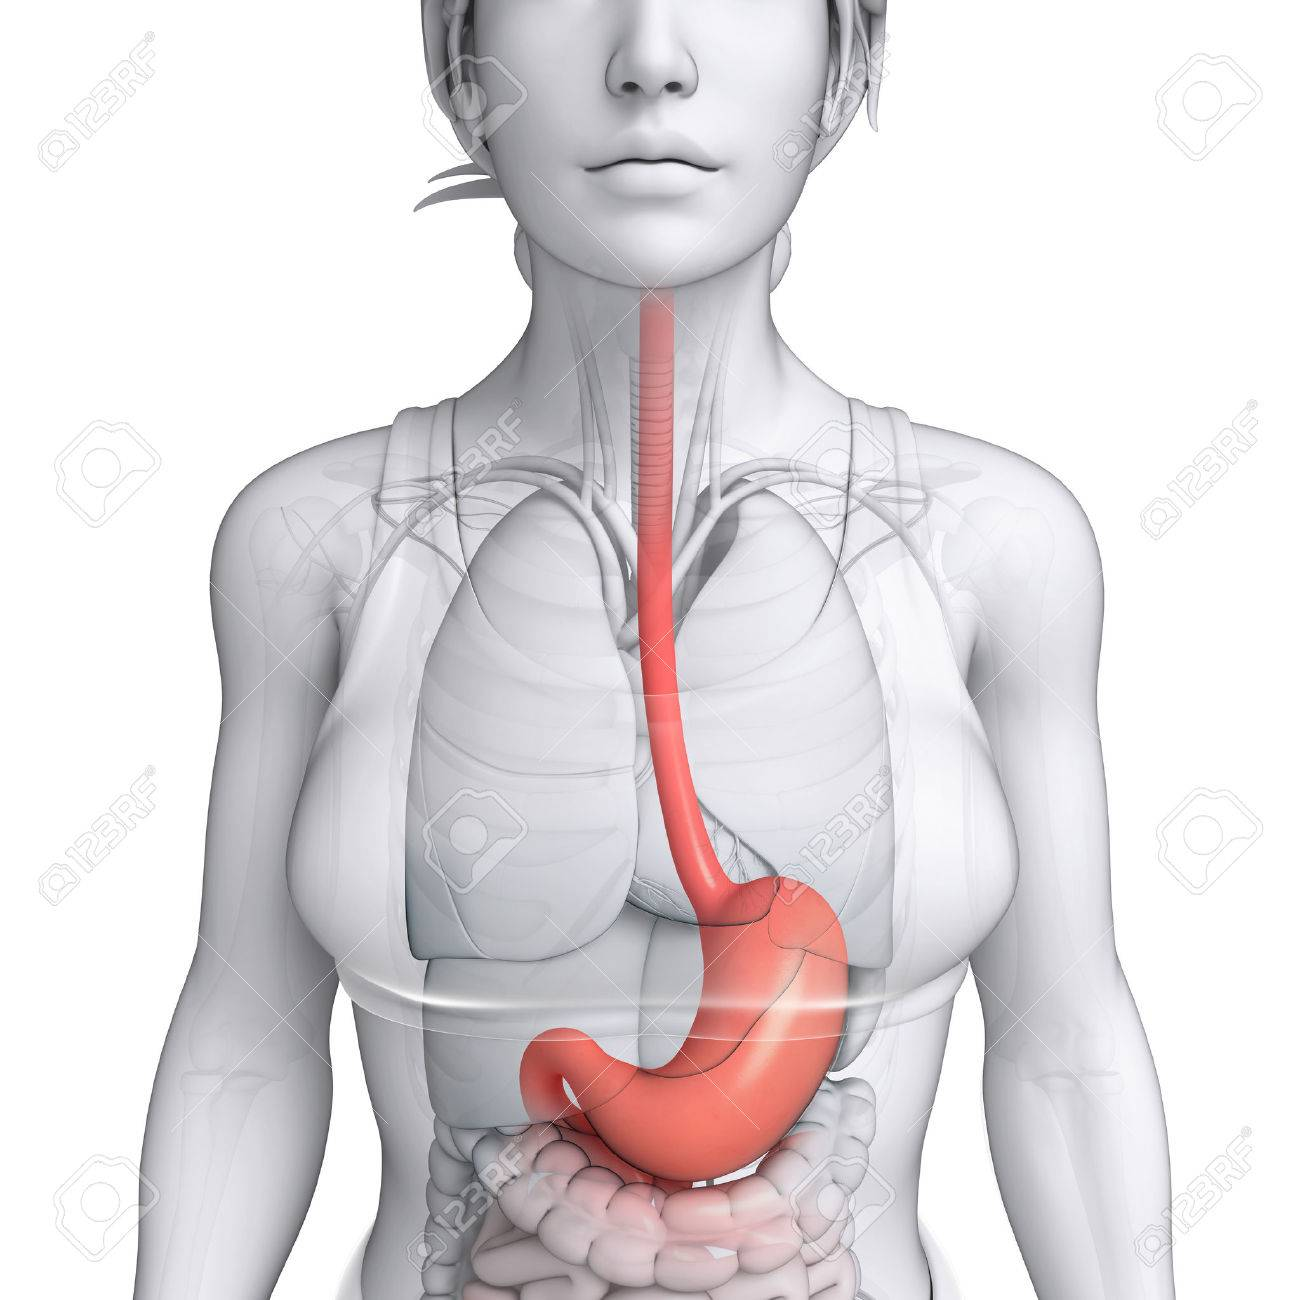 Illustration Of Female Stomach Anatomy Stock Photo, Picture And ...